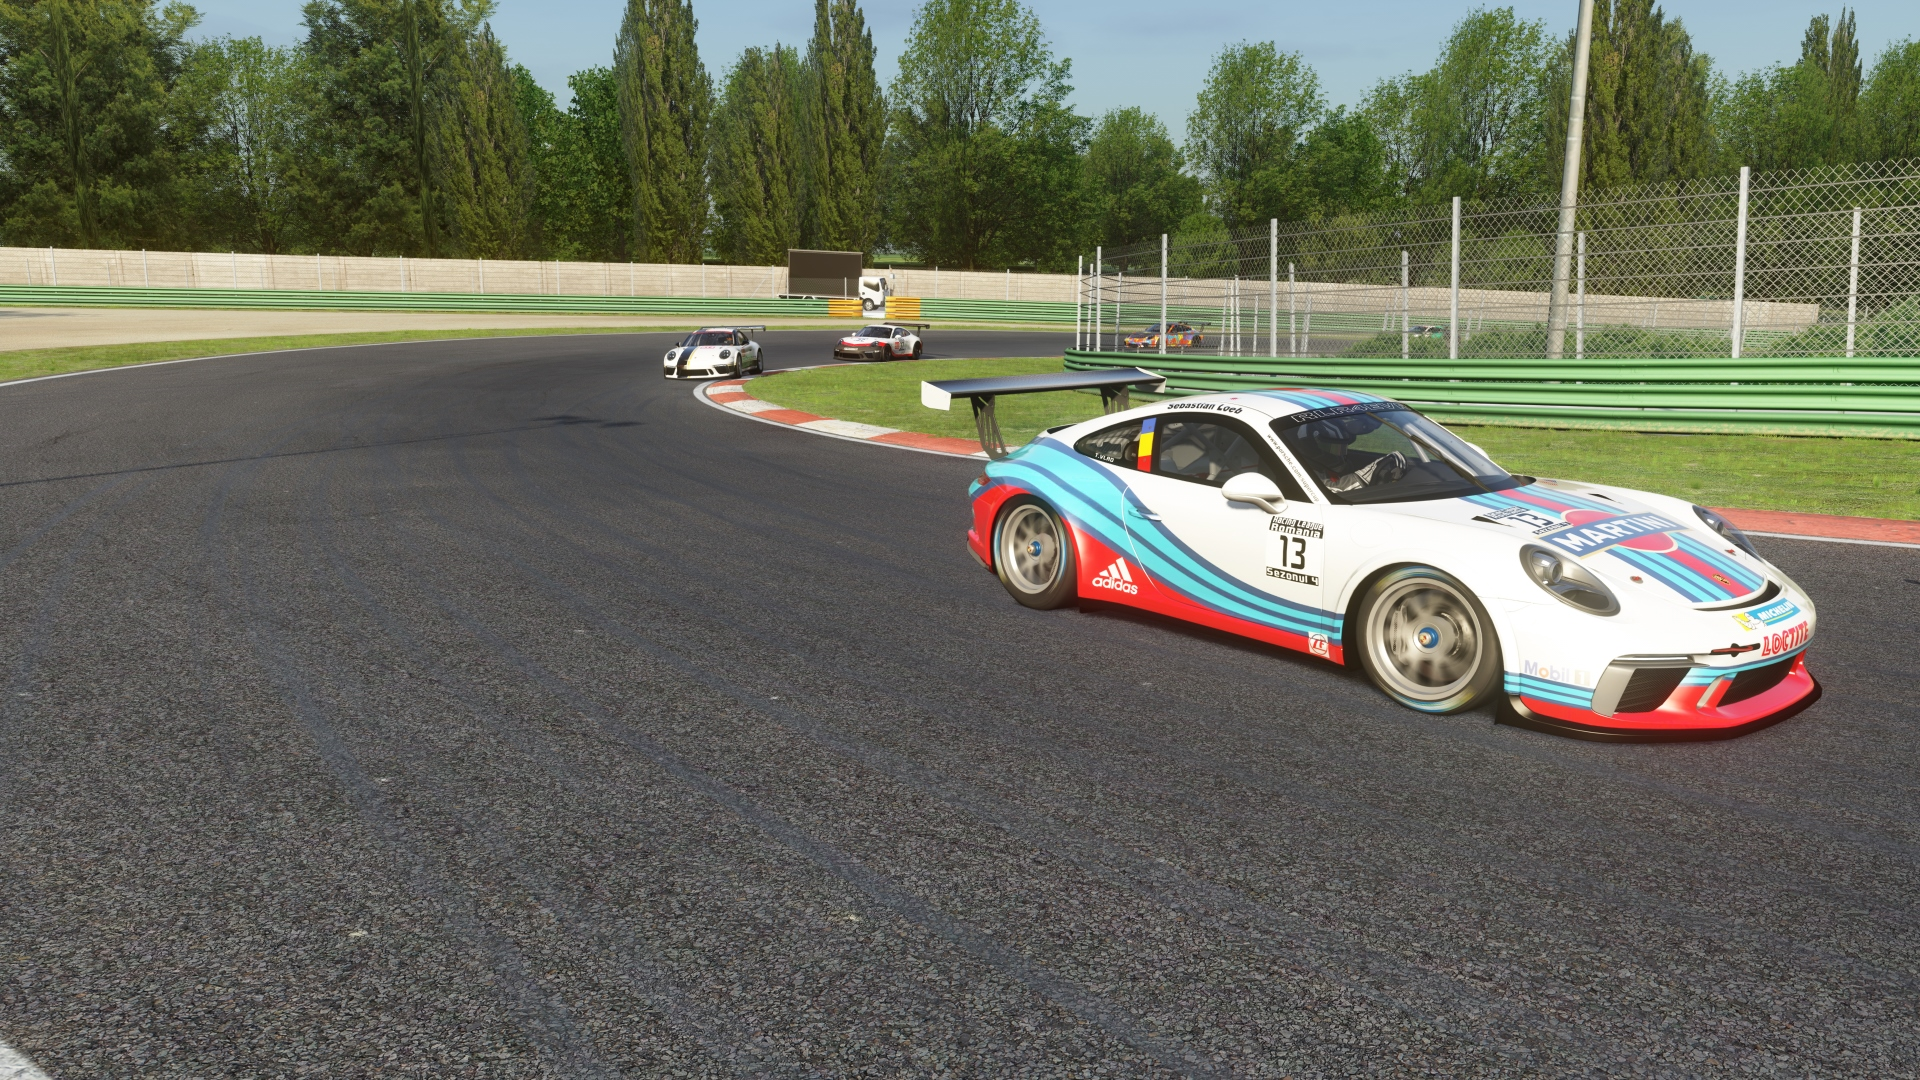 Screenshot_ks_porsche_911_gt3_cup_2017_imola_13-11-119-10-38-12.jpg